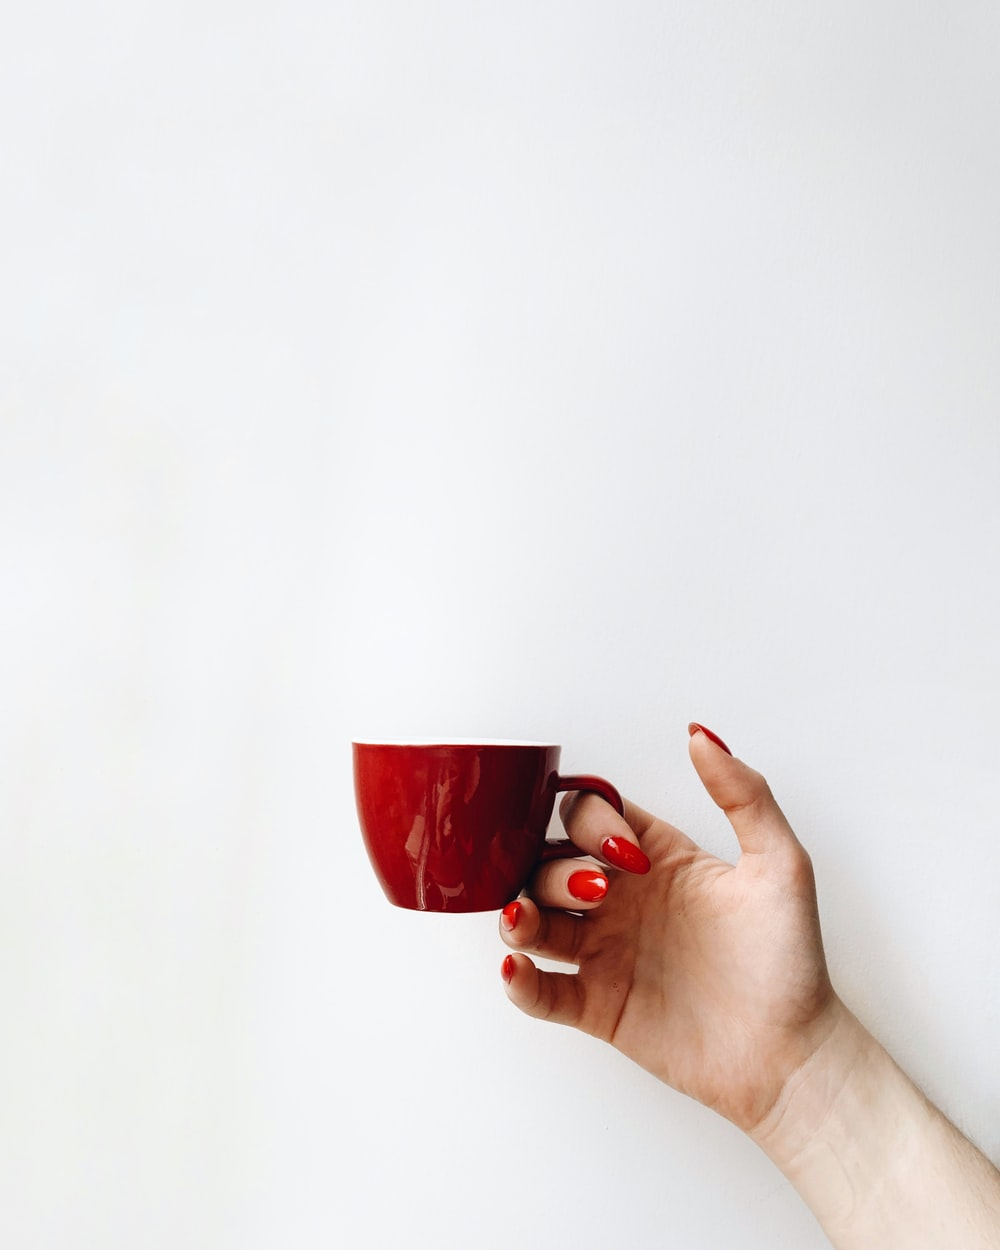 woman with red manicure holds red cup